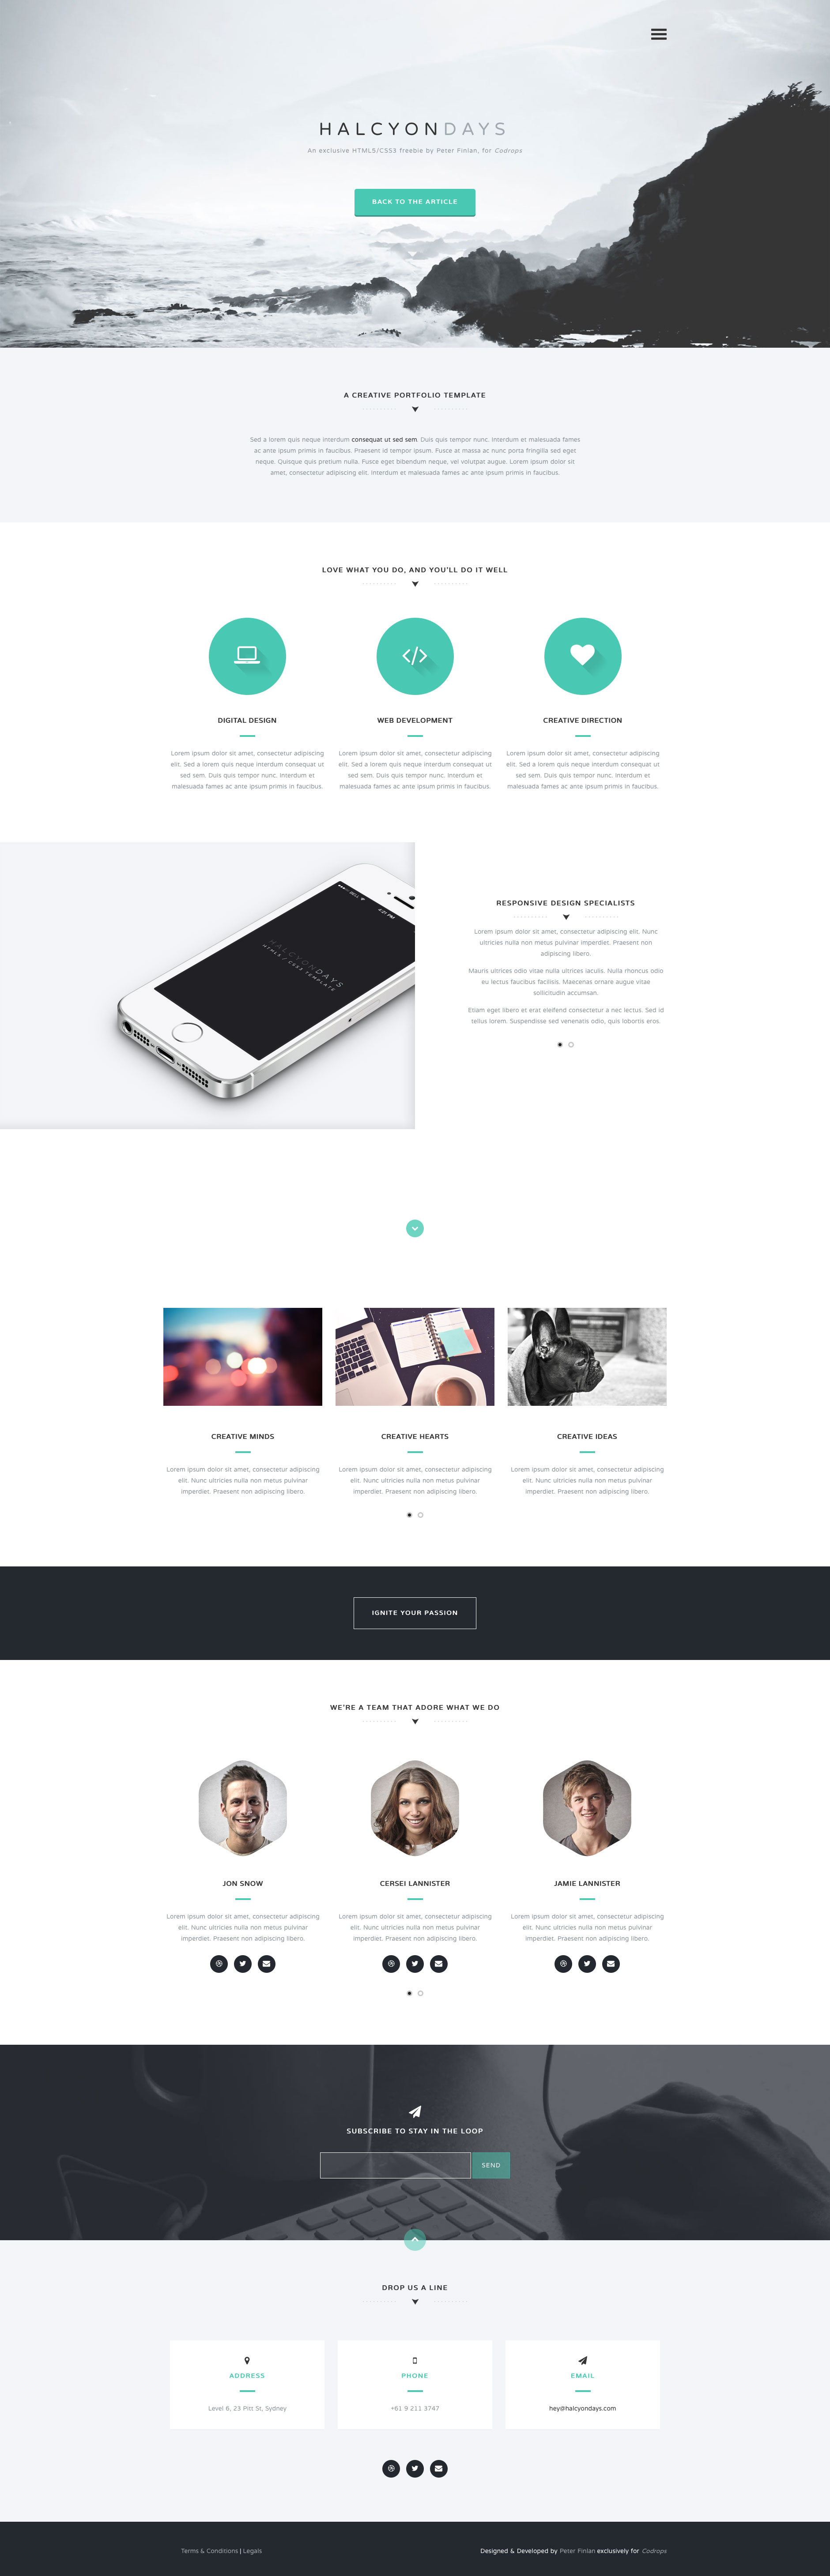 Halcyon Days is a minimalist free responsive HTML5 one page website template based on Bootstrap 3 framework. It's the best choice for business, product or personal websites.